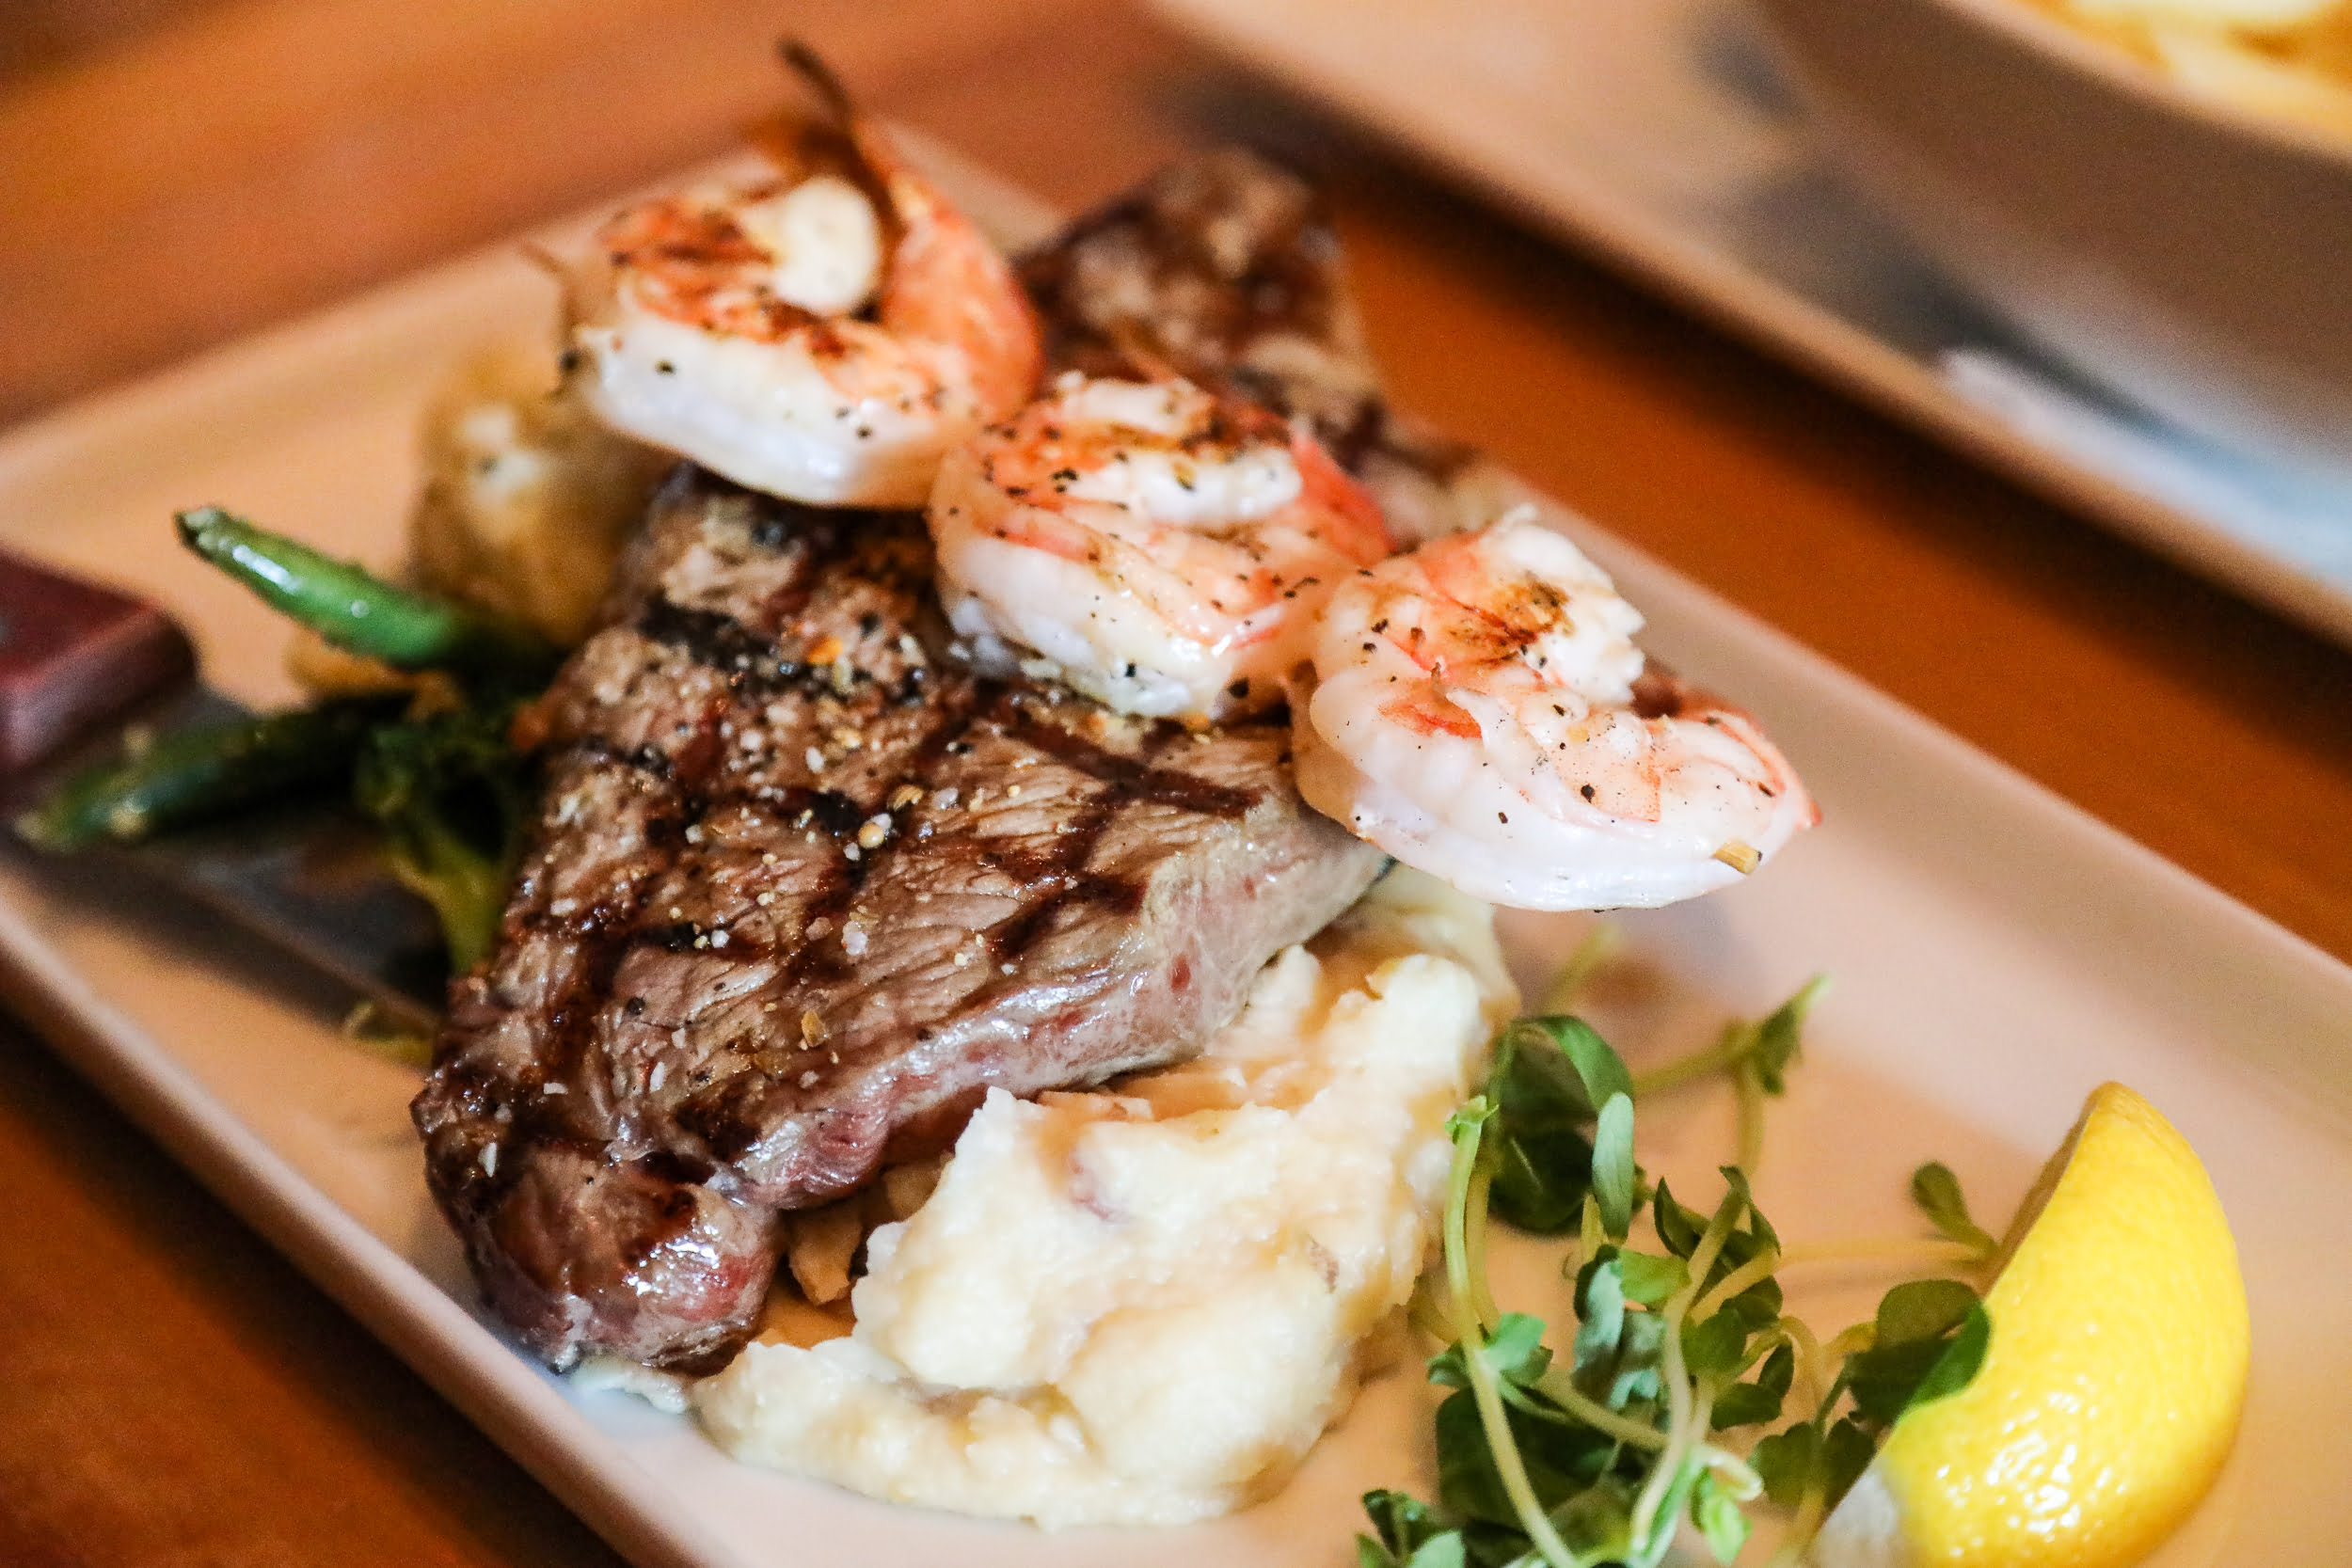 Touch of Each steak at Copper Blues